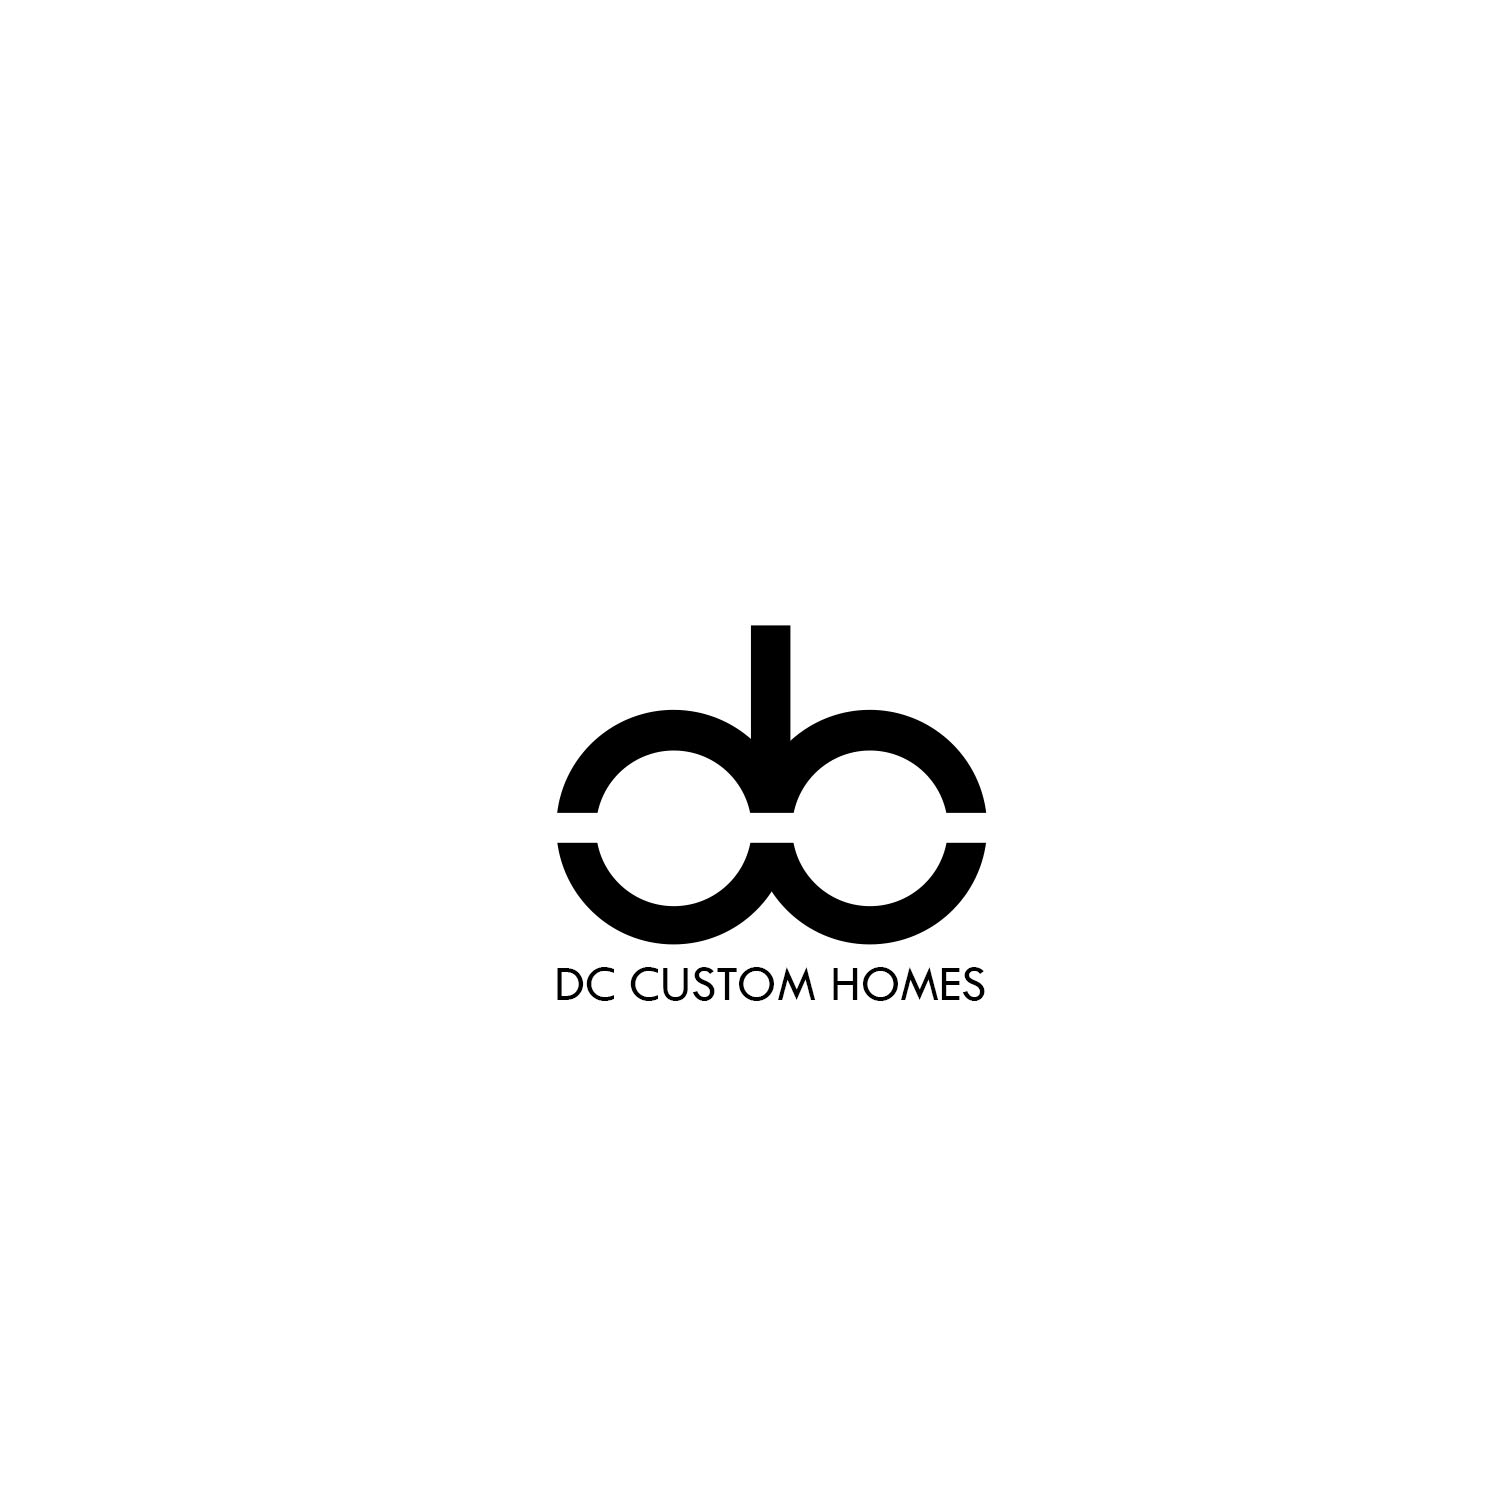 Logo Design by Private User - Entry No. 144 in the Logo Design Contest Creative Logo Design for DC Custom Homes.